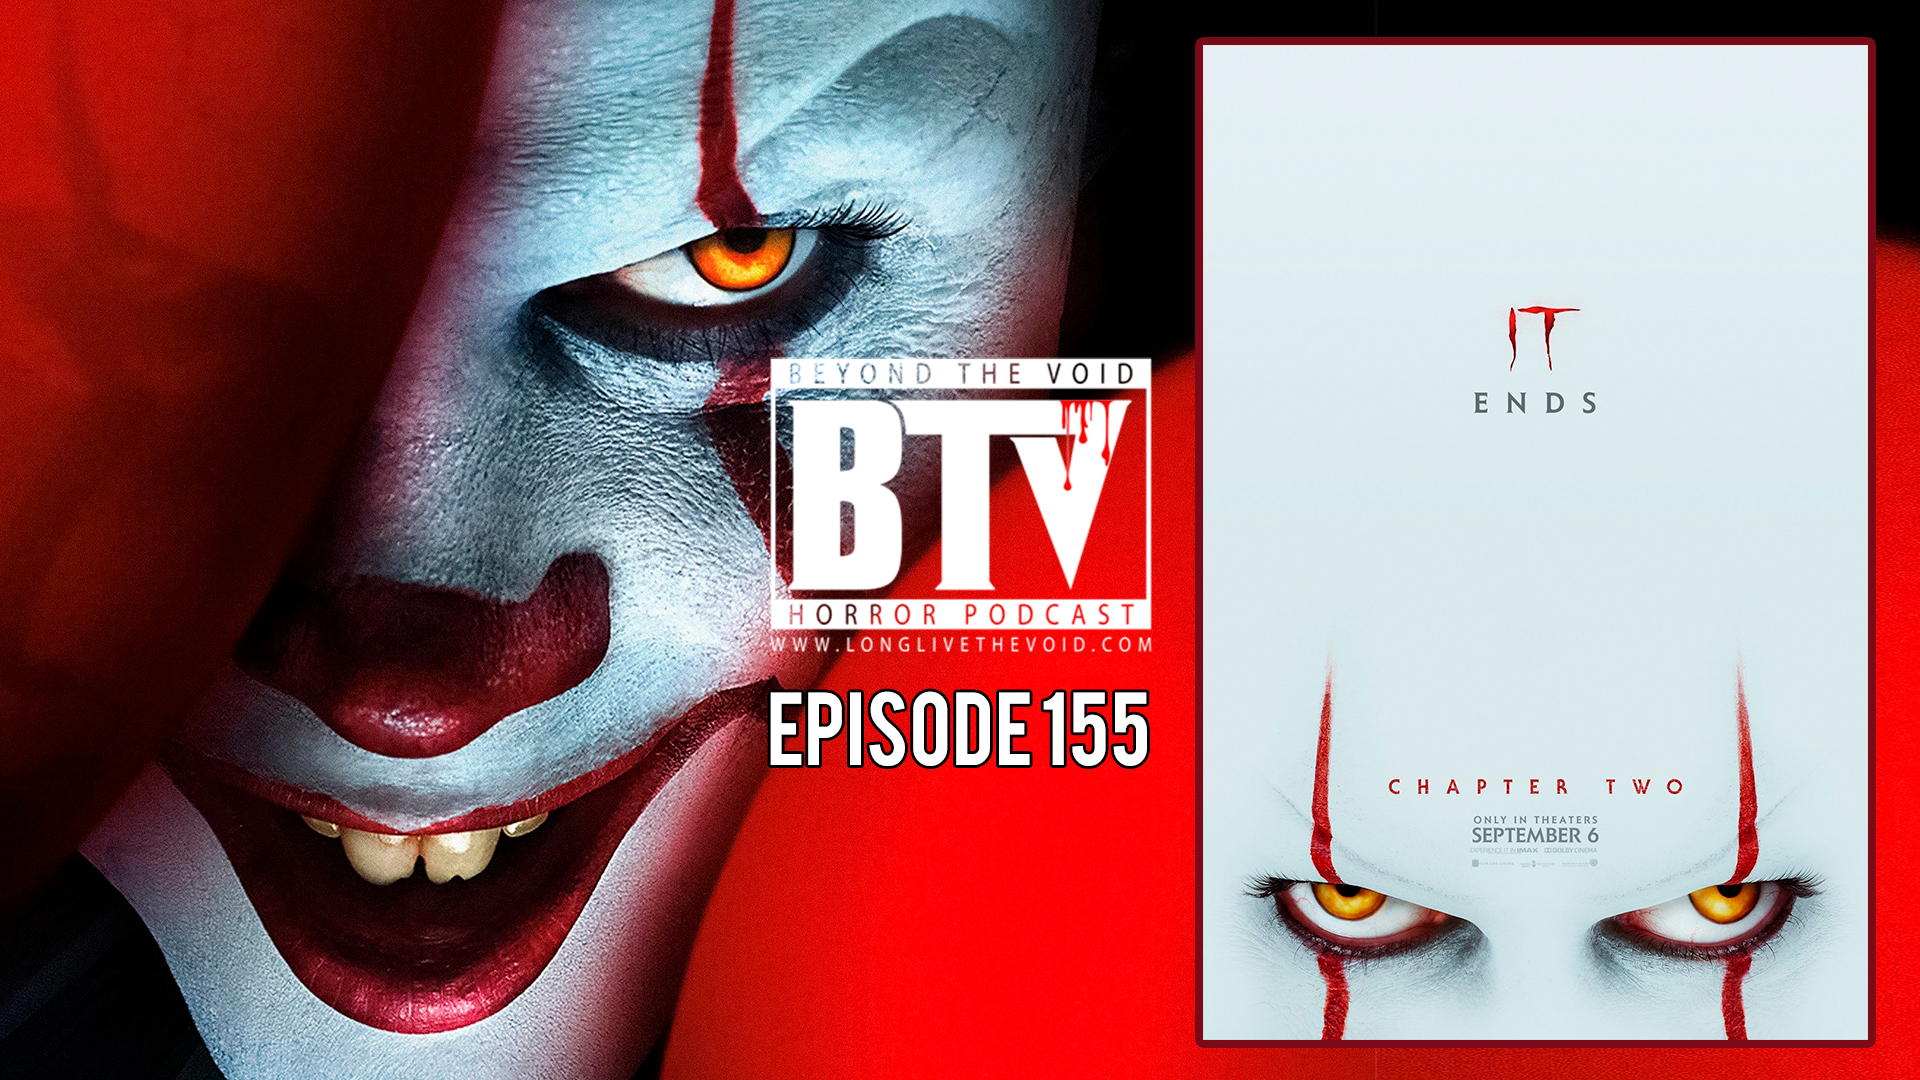 YT-Ep155-It-Chapter-Two-BTV.jpg